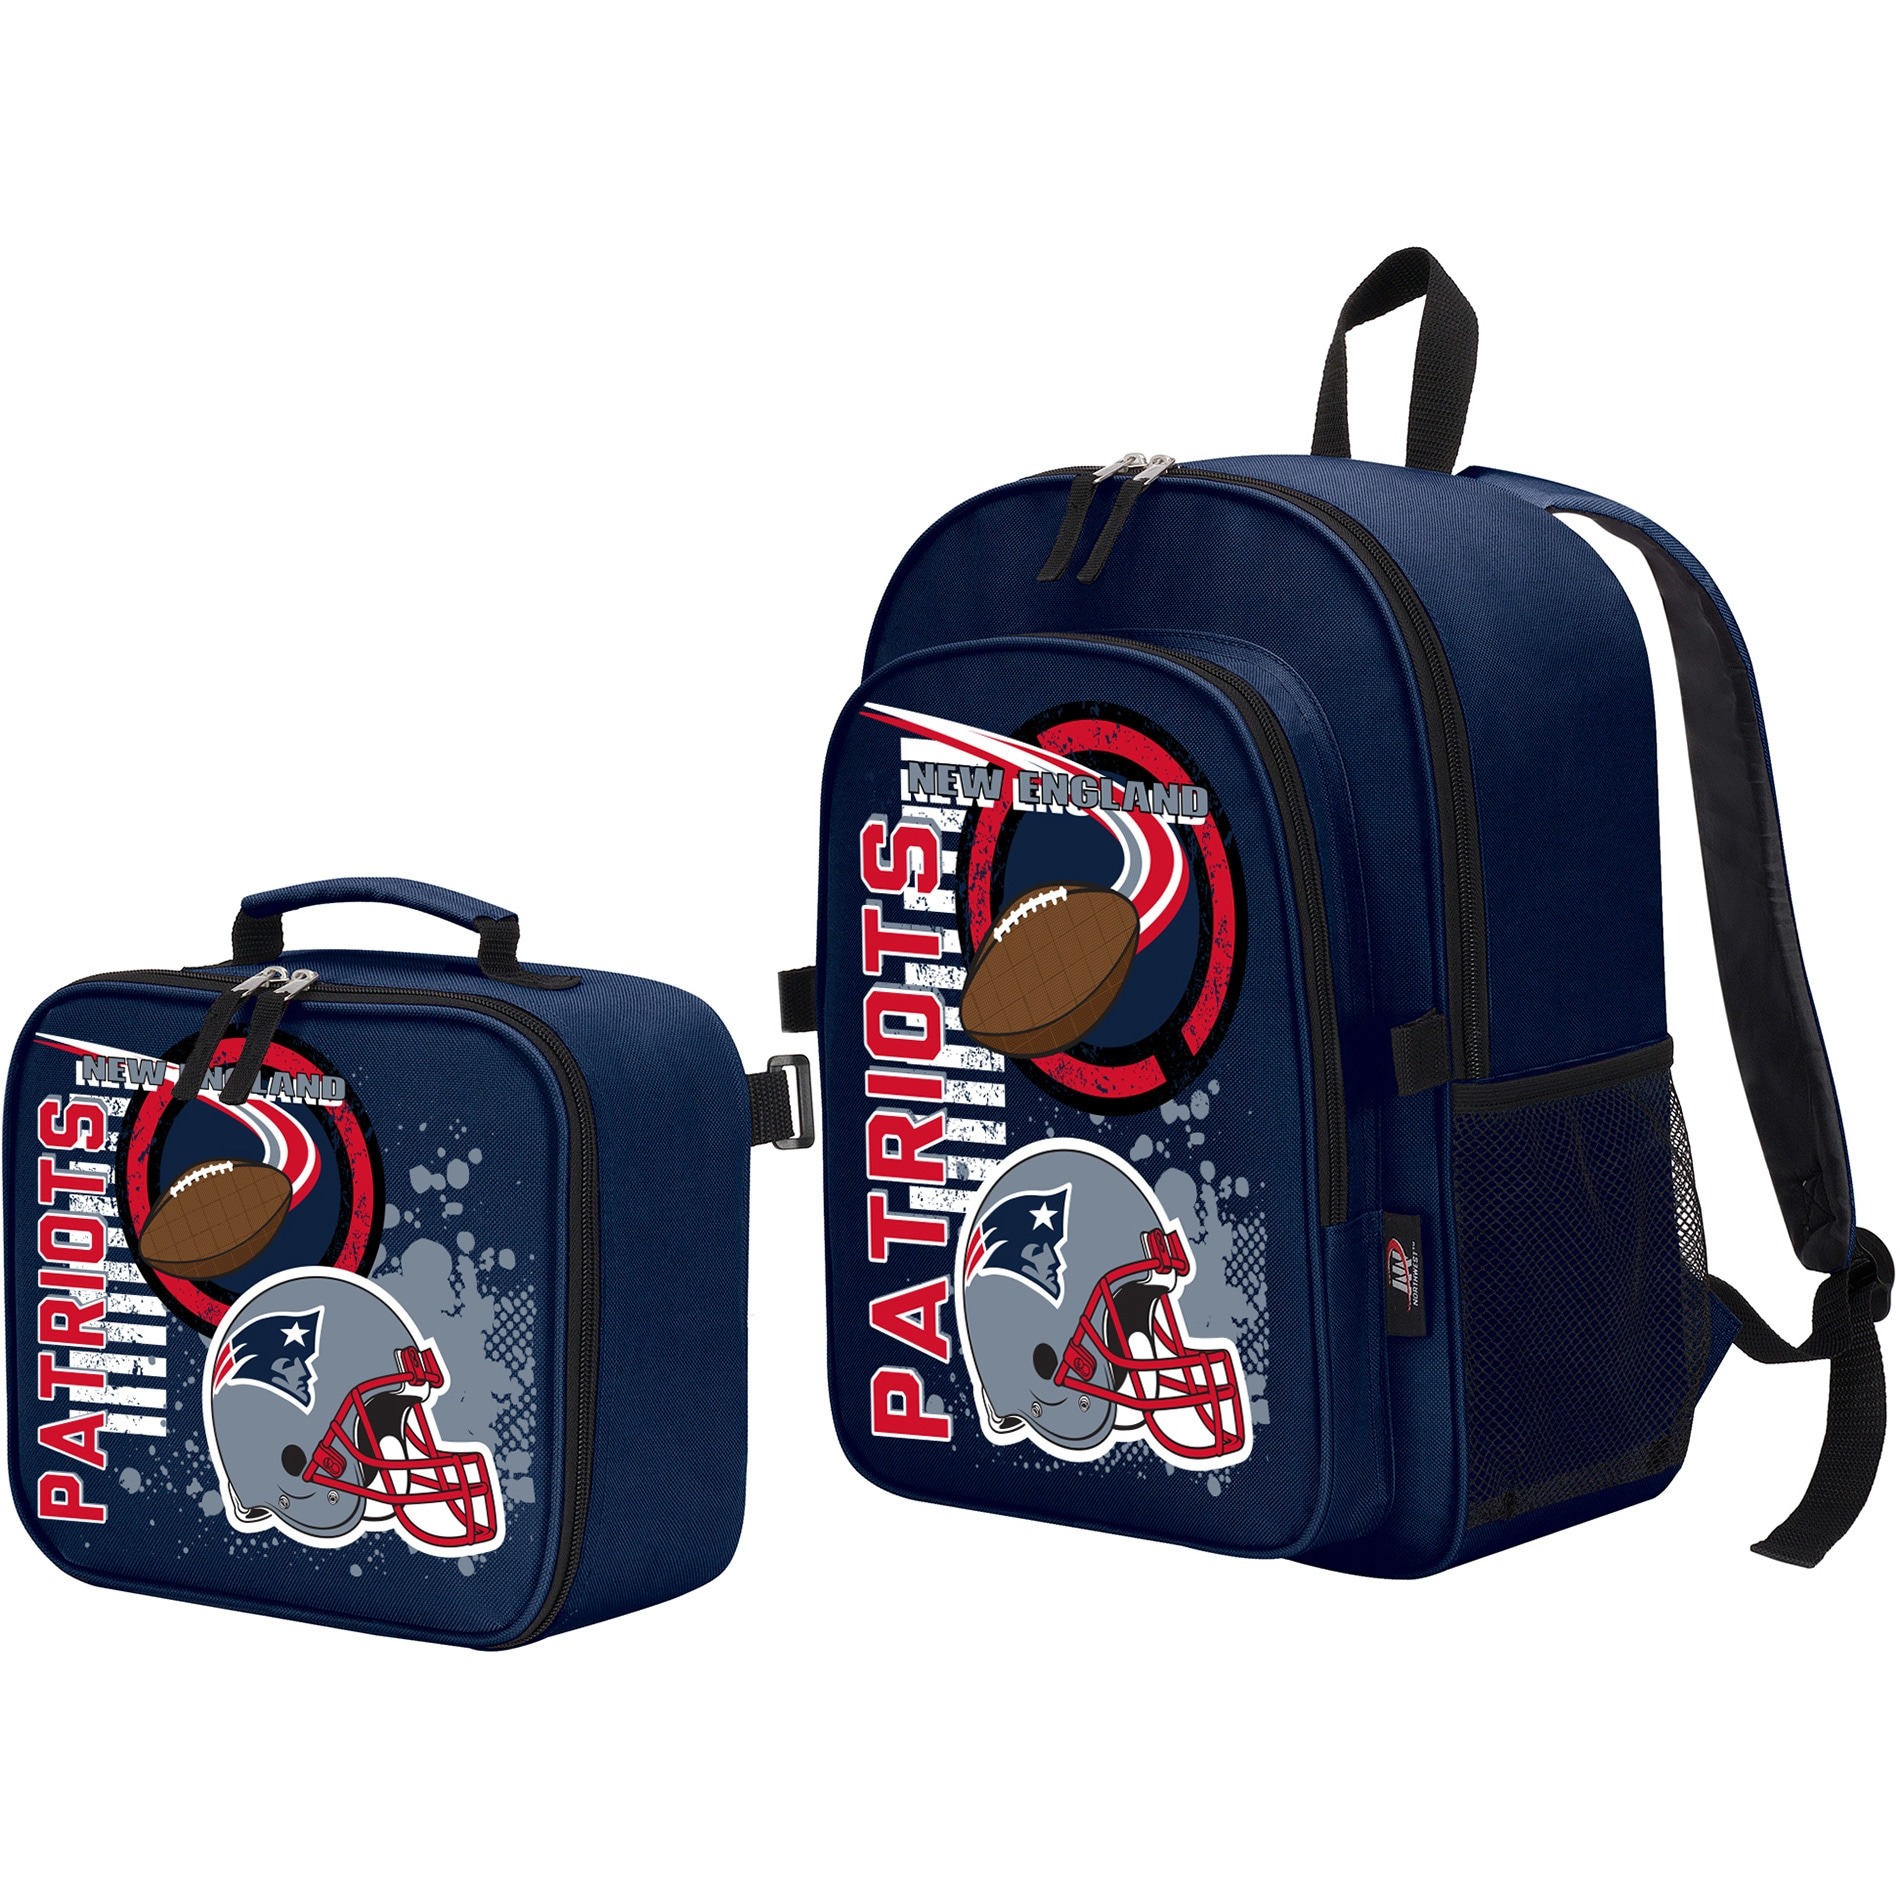 Black The Northwest Company MLB Baltimore Orioles Sacked Lunchbox 10.5-Inch